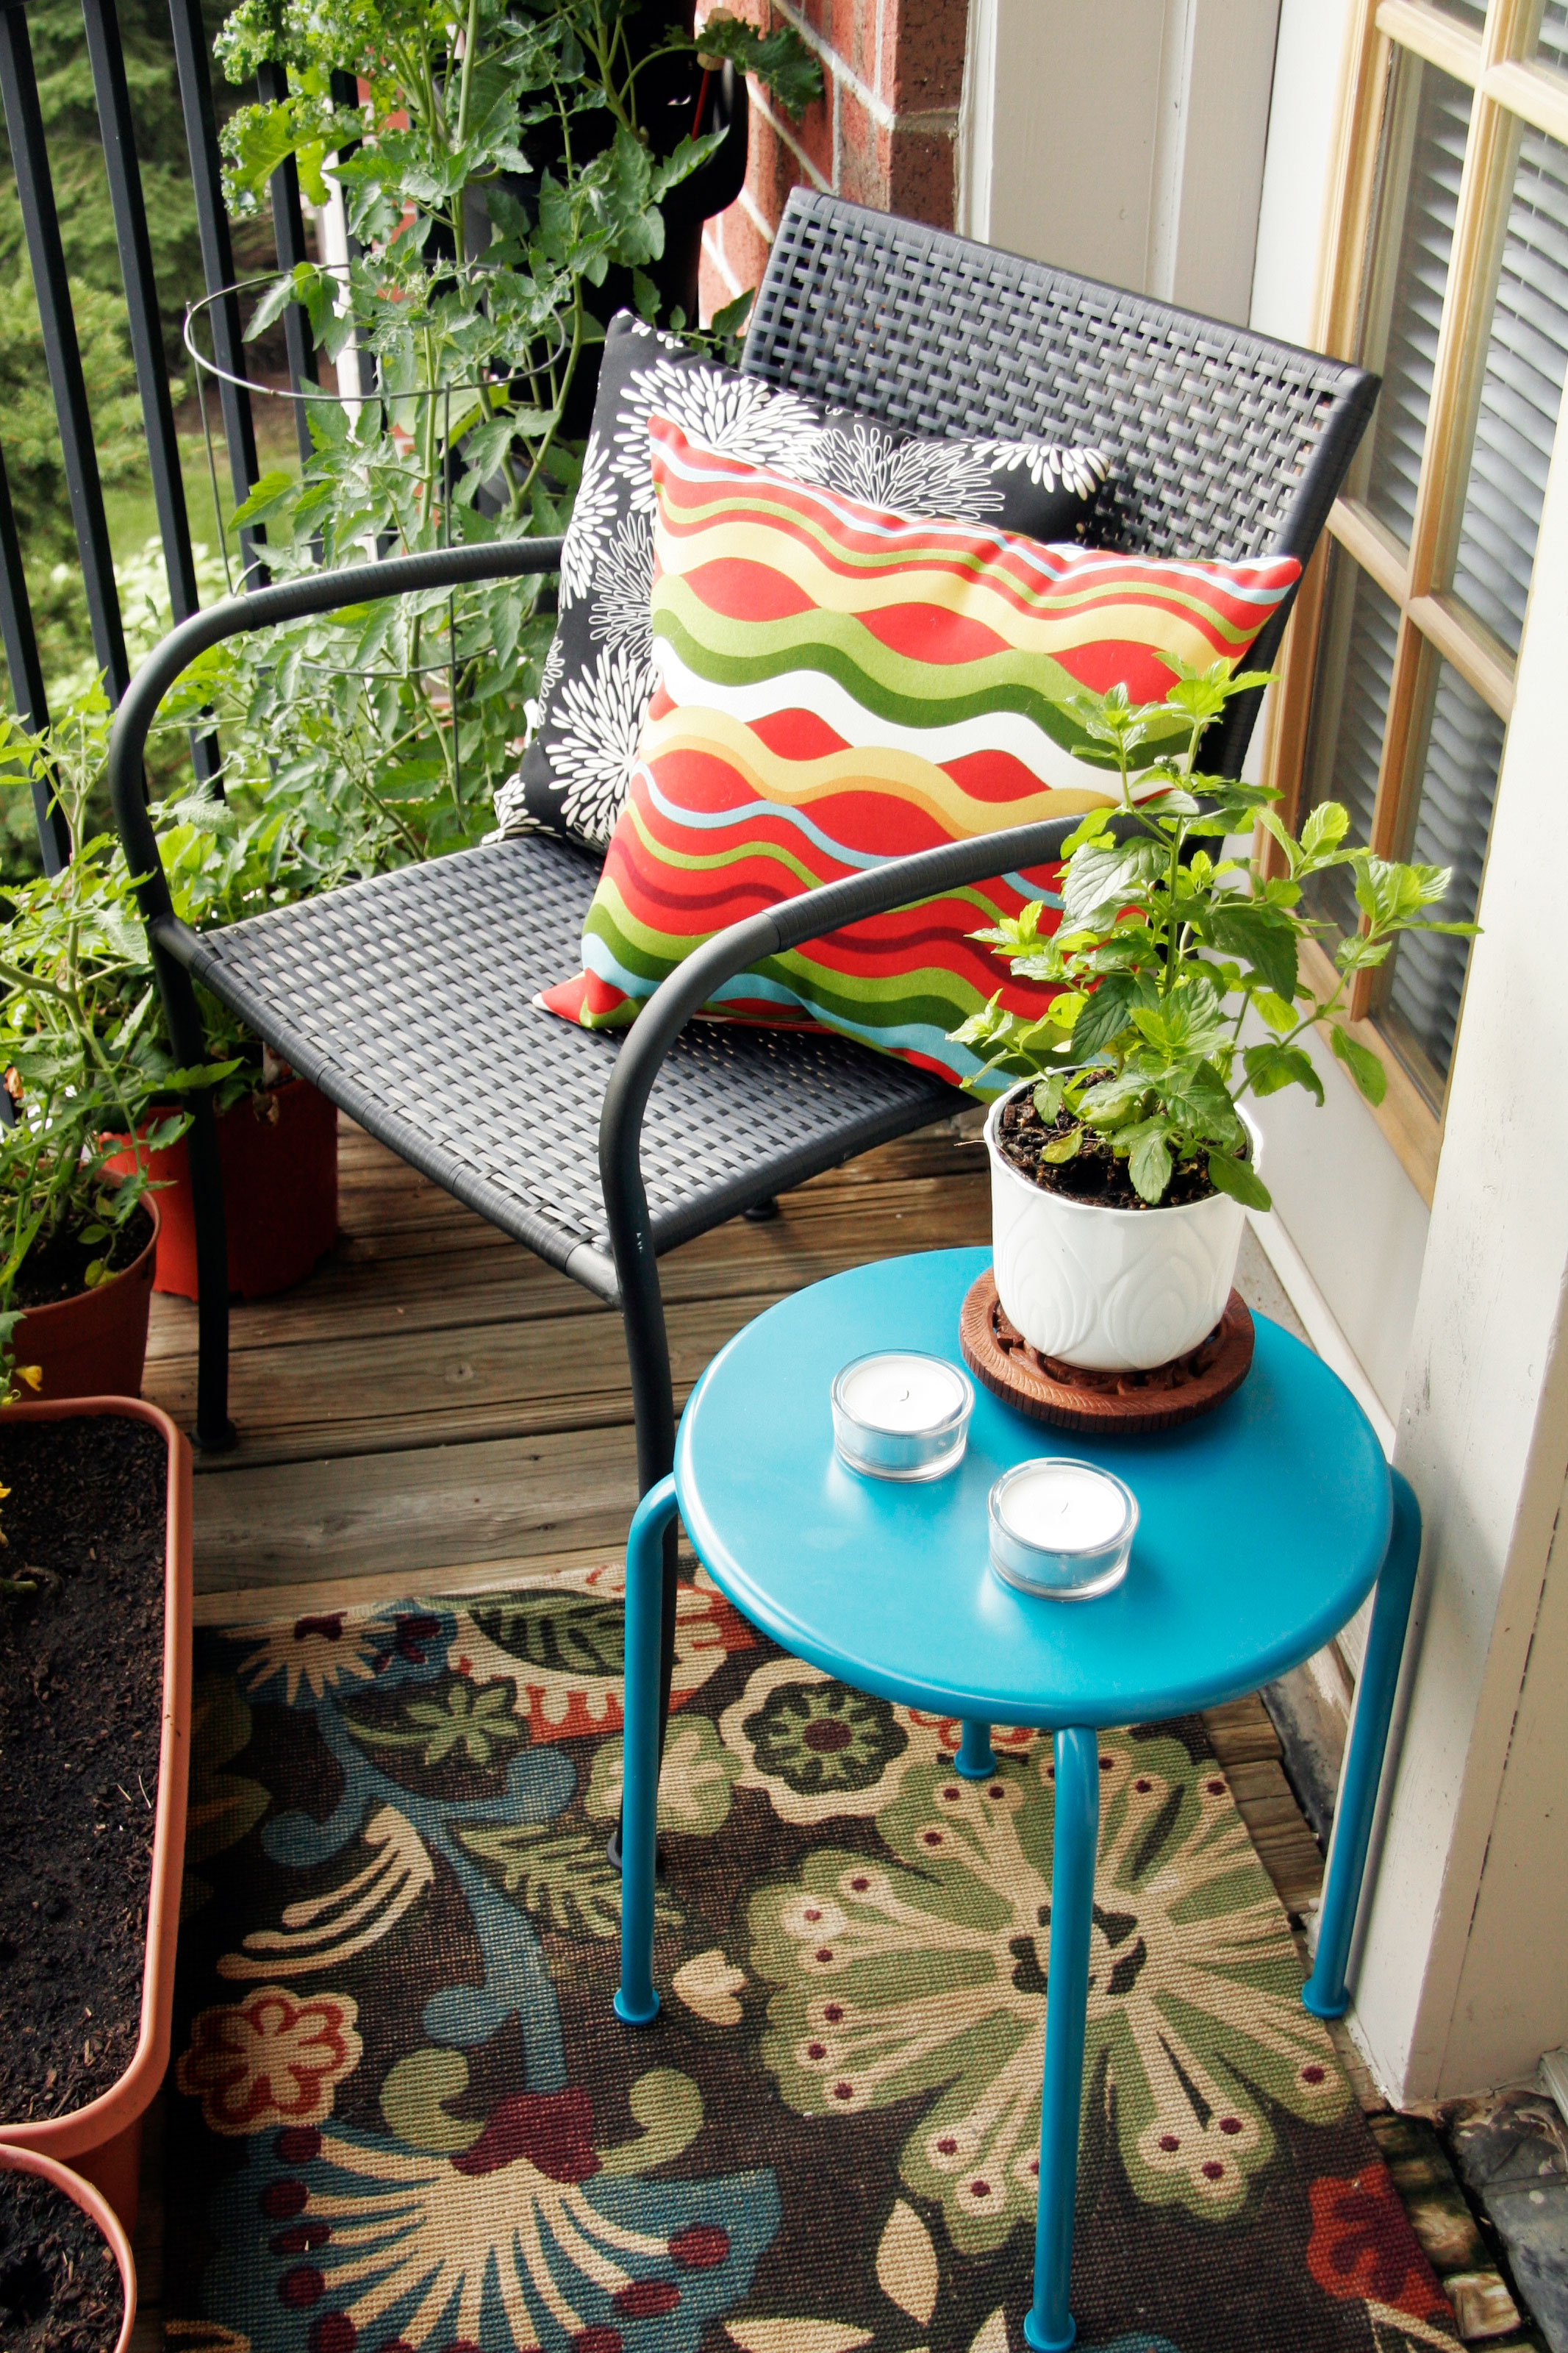 Outdoor Decorating Ideas small outdoor decor ideas - decorate your small yard or patio